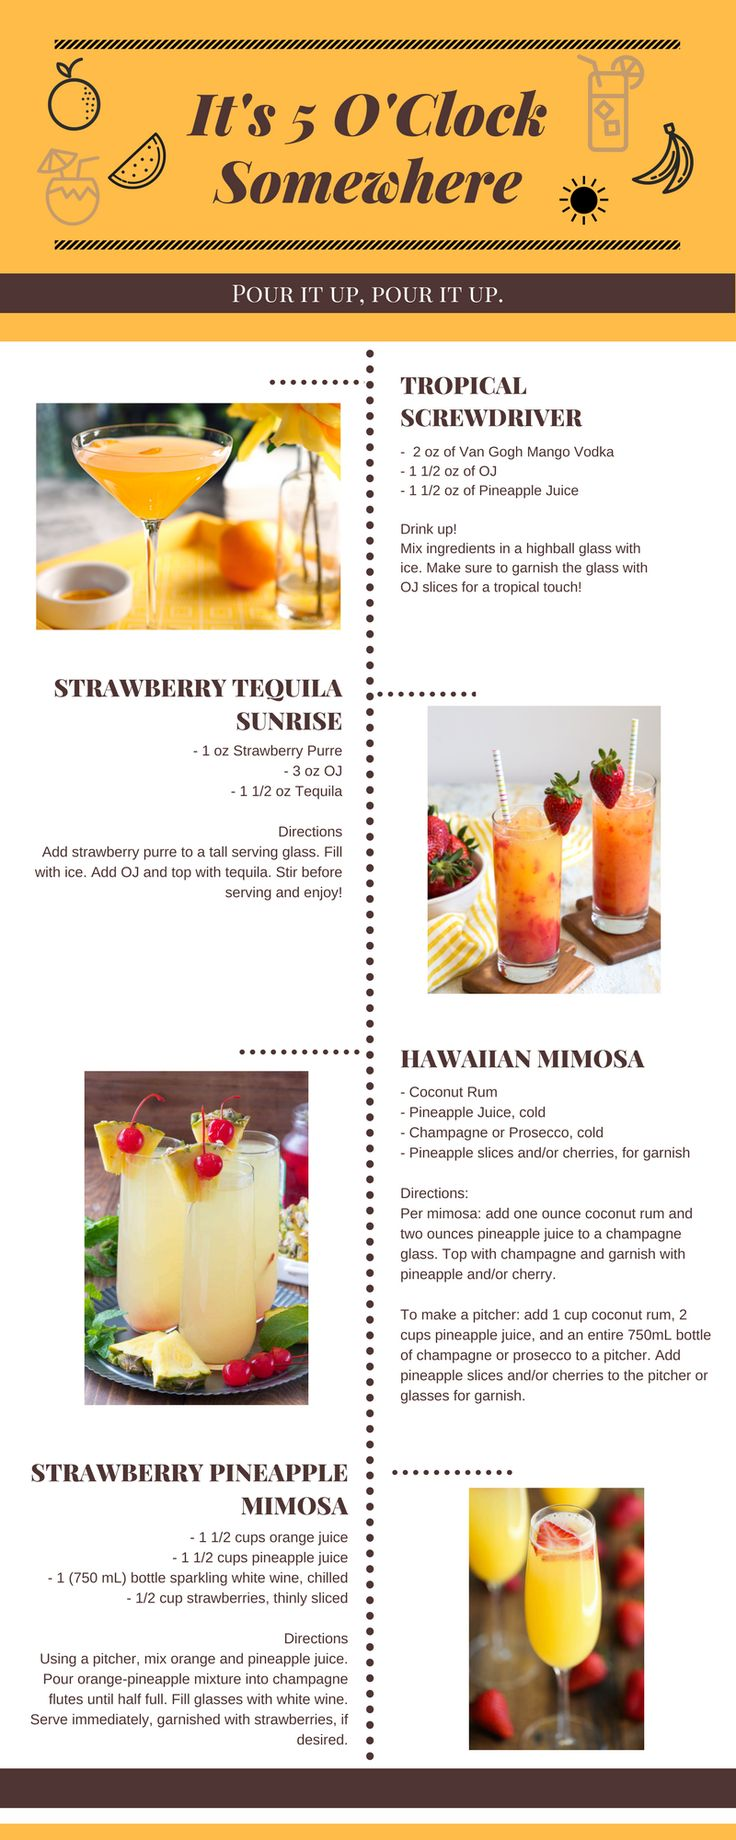 An infographic of tasty, tropical inspired drinks for any time of day! I've pinned all original recipes and sources to this board as well.    Recipe Credit: https://www.thelittleepicurean.com/2017/05/strawberry-tequila-sunrise.html  http://damndelicious.net/2015/04/04/strawberry-pineapple-mimosas/  https://www.crazyforcrust.com/hawaiian-mimosas/